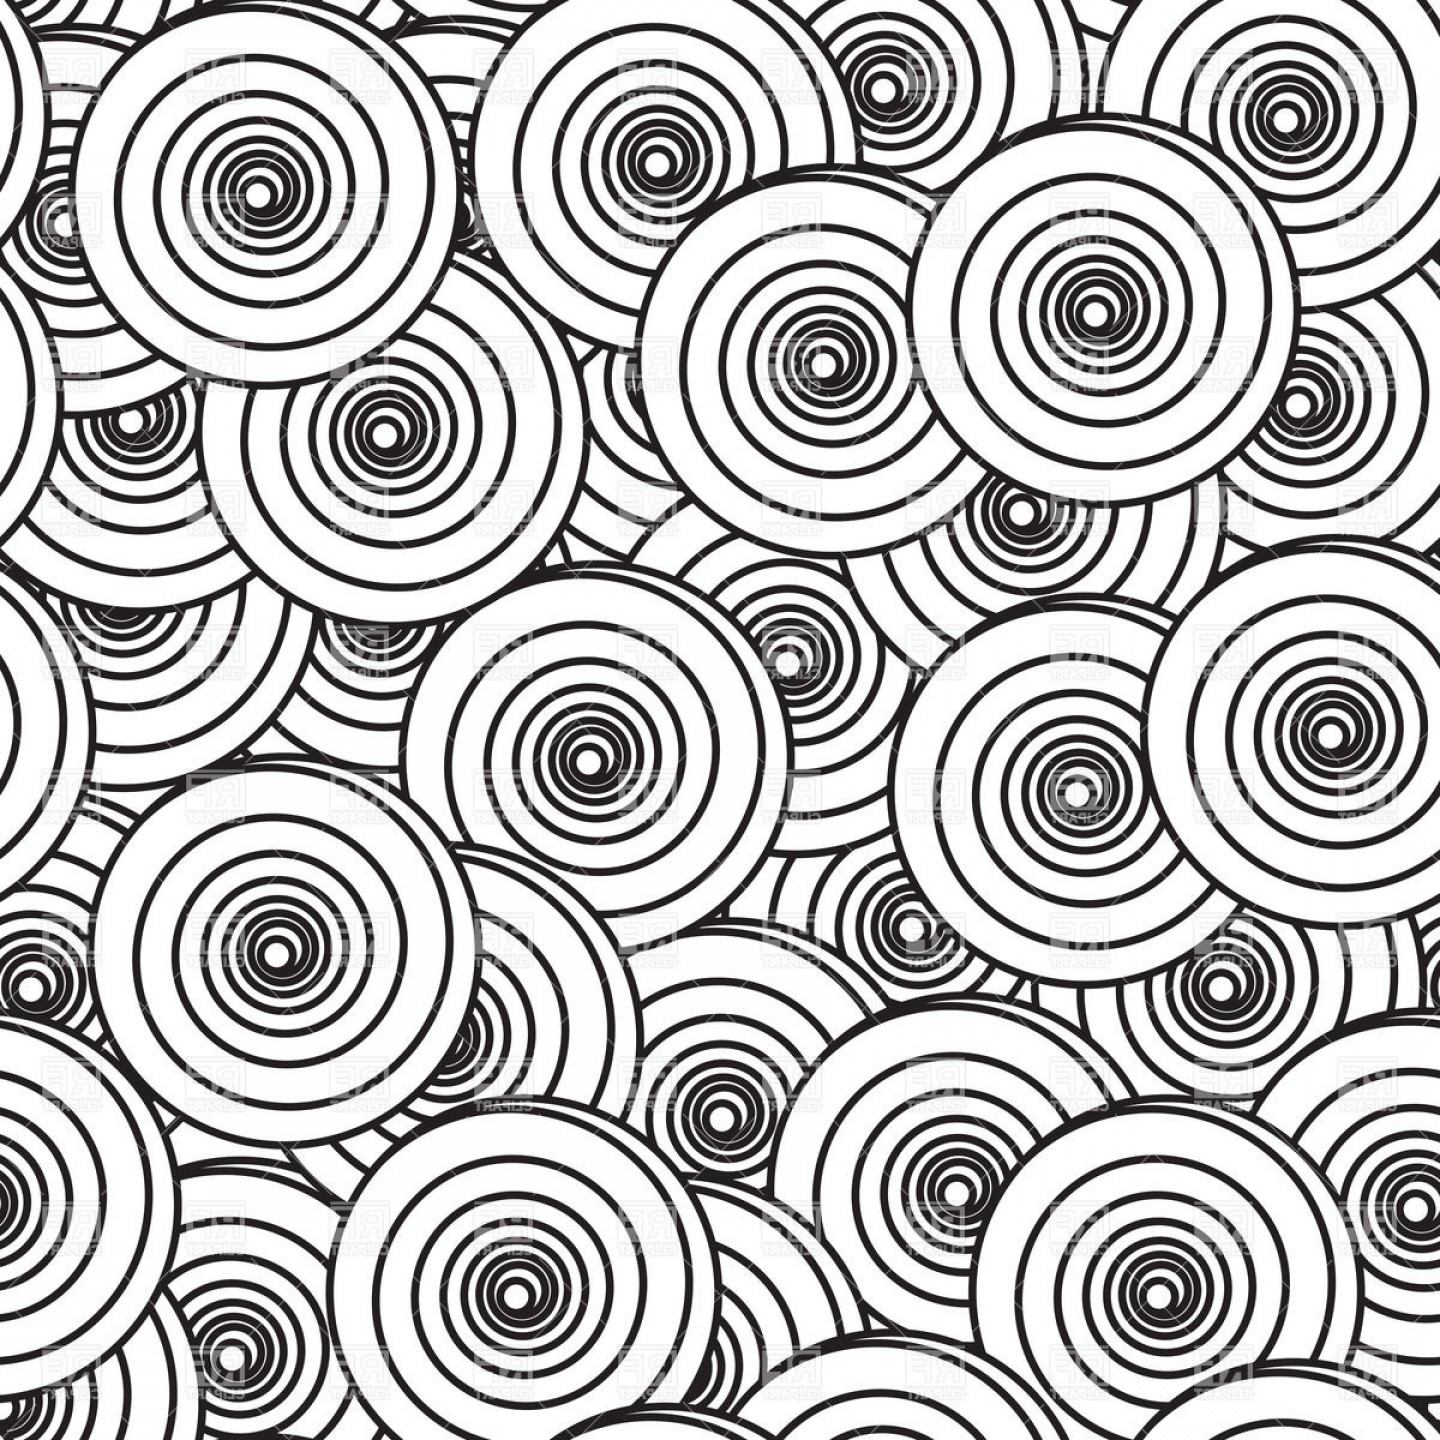 Black And White Circle Vector Graphics: Black And White Background With Spiral Circles Vector Clipart